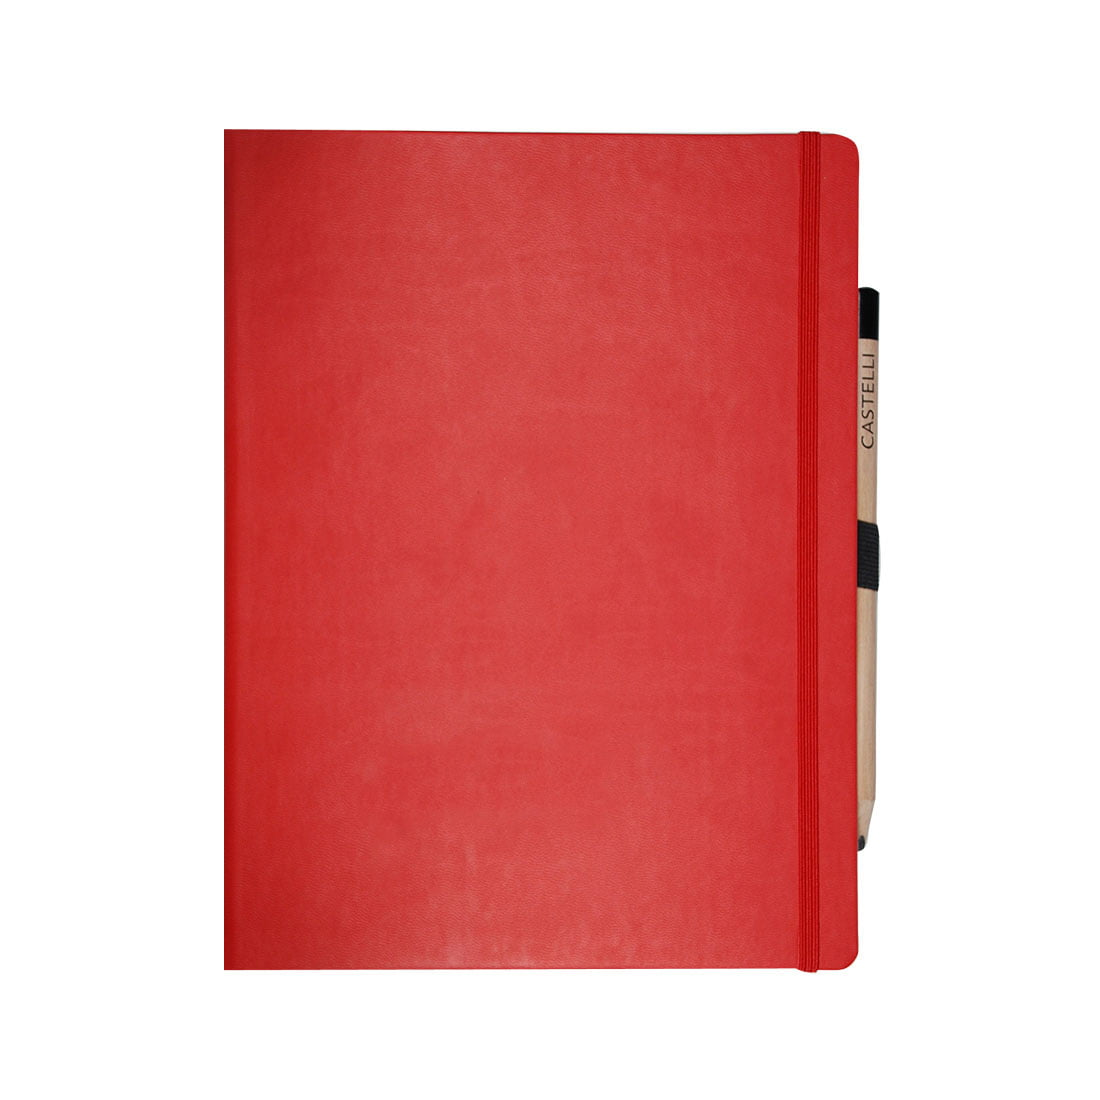 Large note book in red with elasticed closure band and pencil.